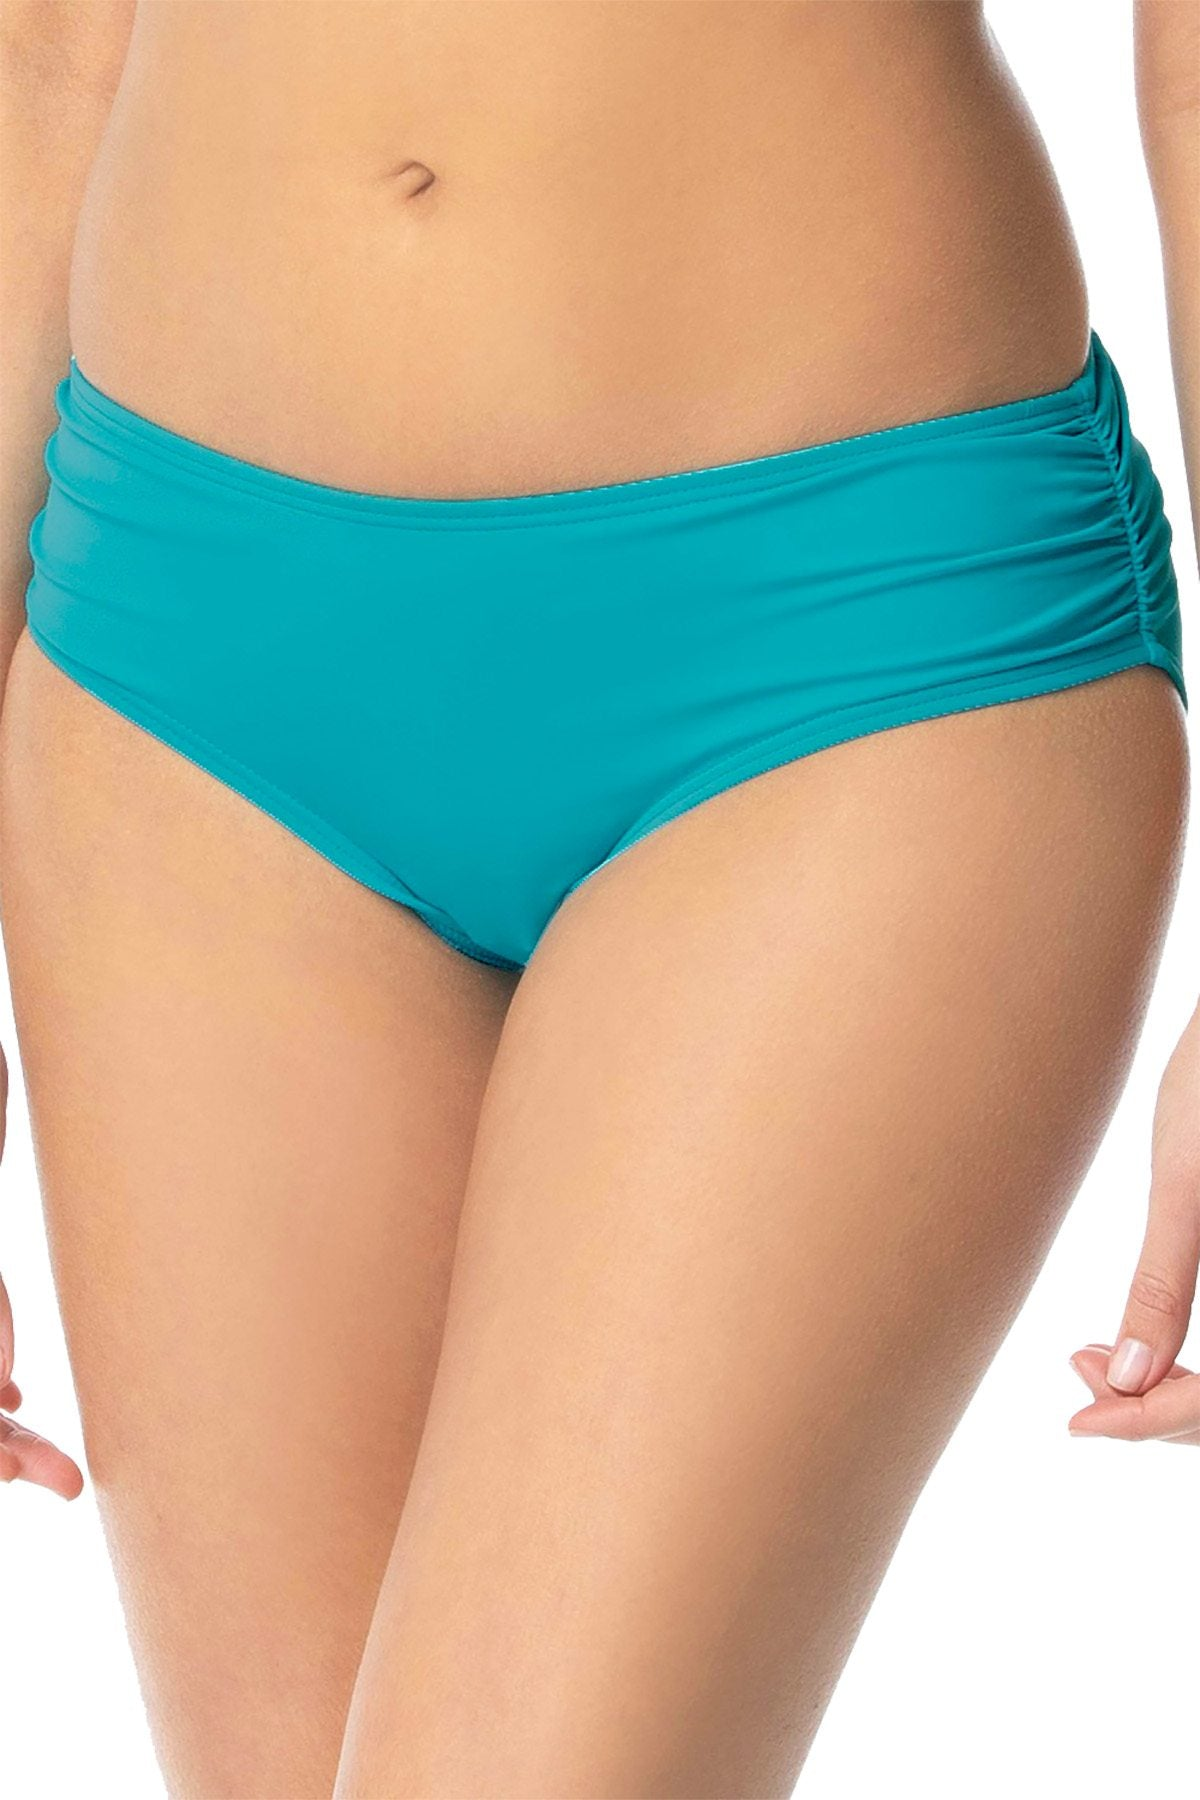 Coco Reef Topaz Teal Ruched Hipster Bikini Bottoms